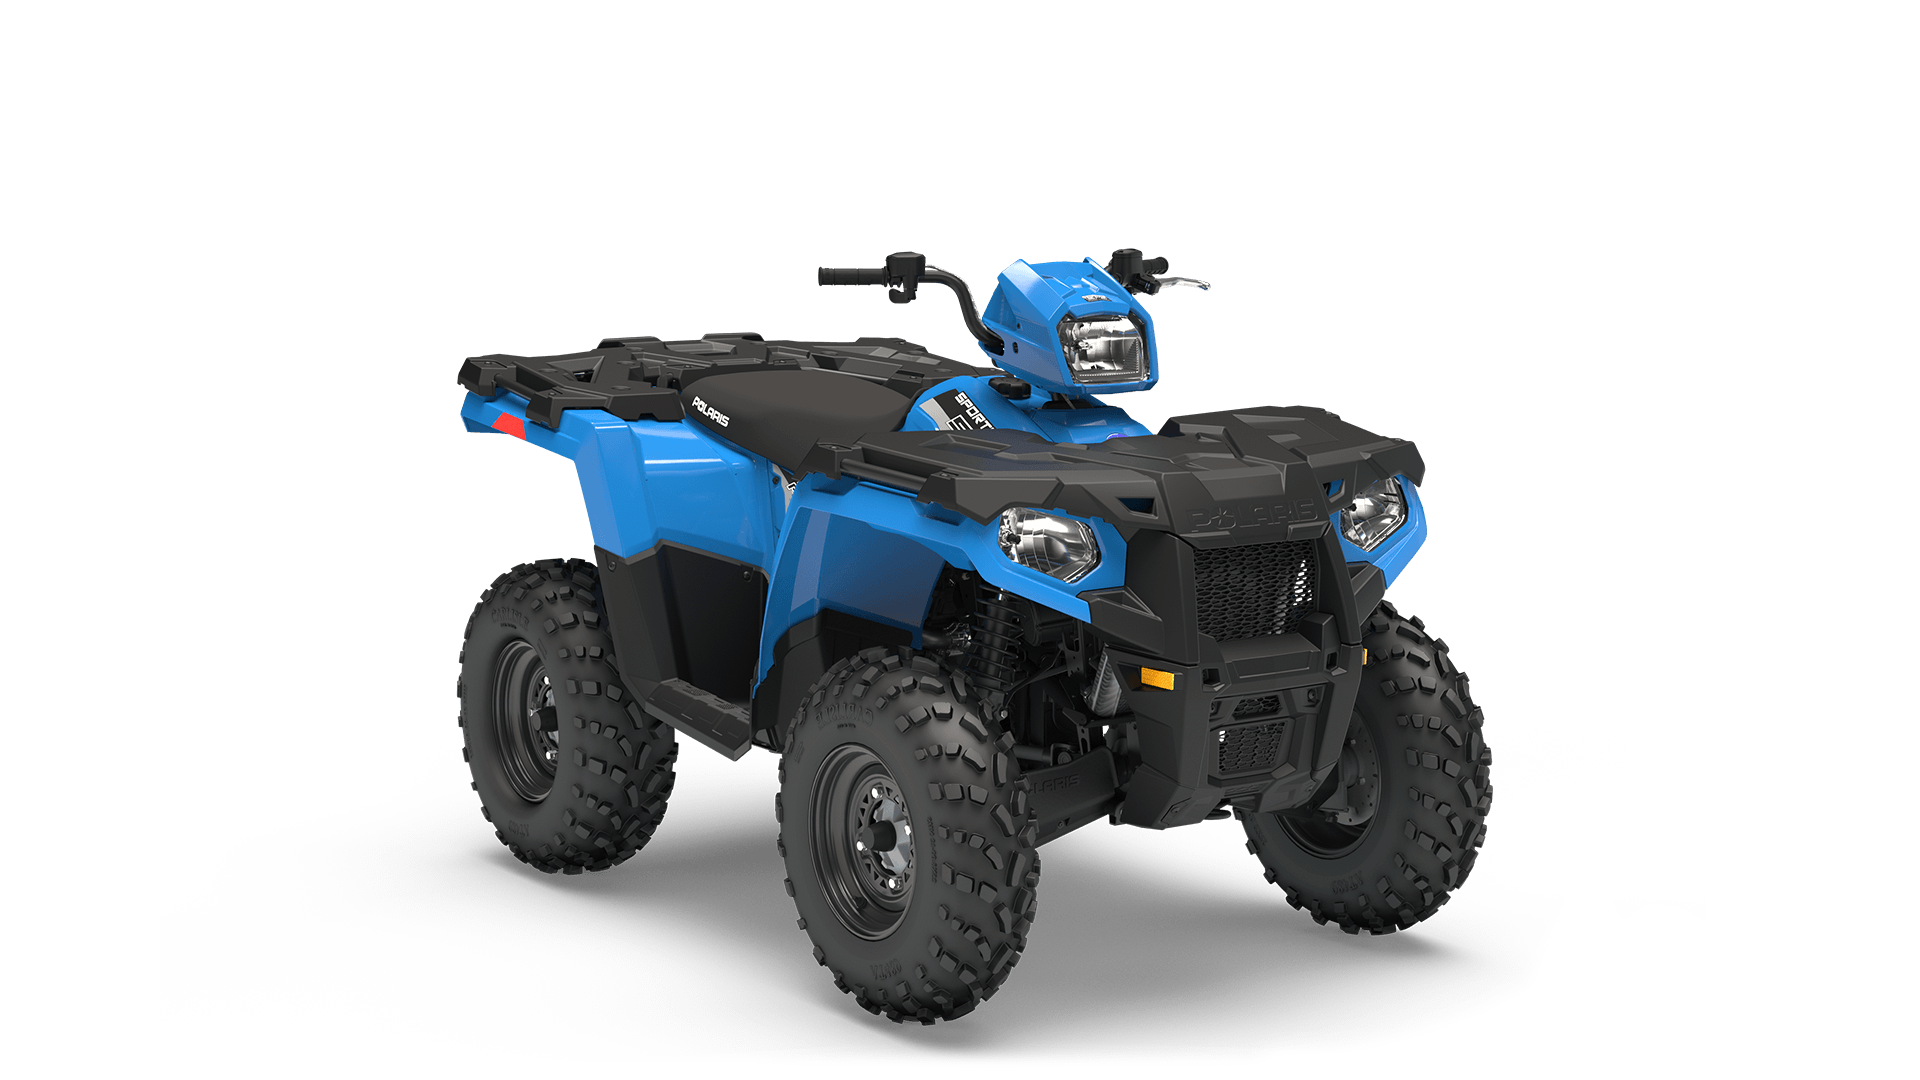 sportsman 570 eps velocity blue?v=5ecade94 polaris sportsman atv accessories